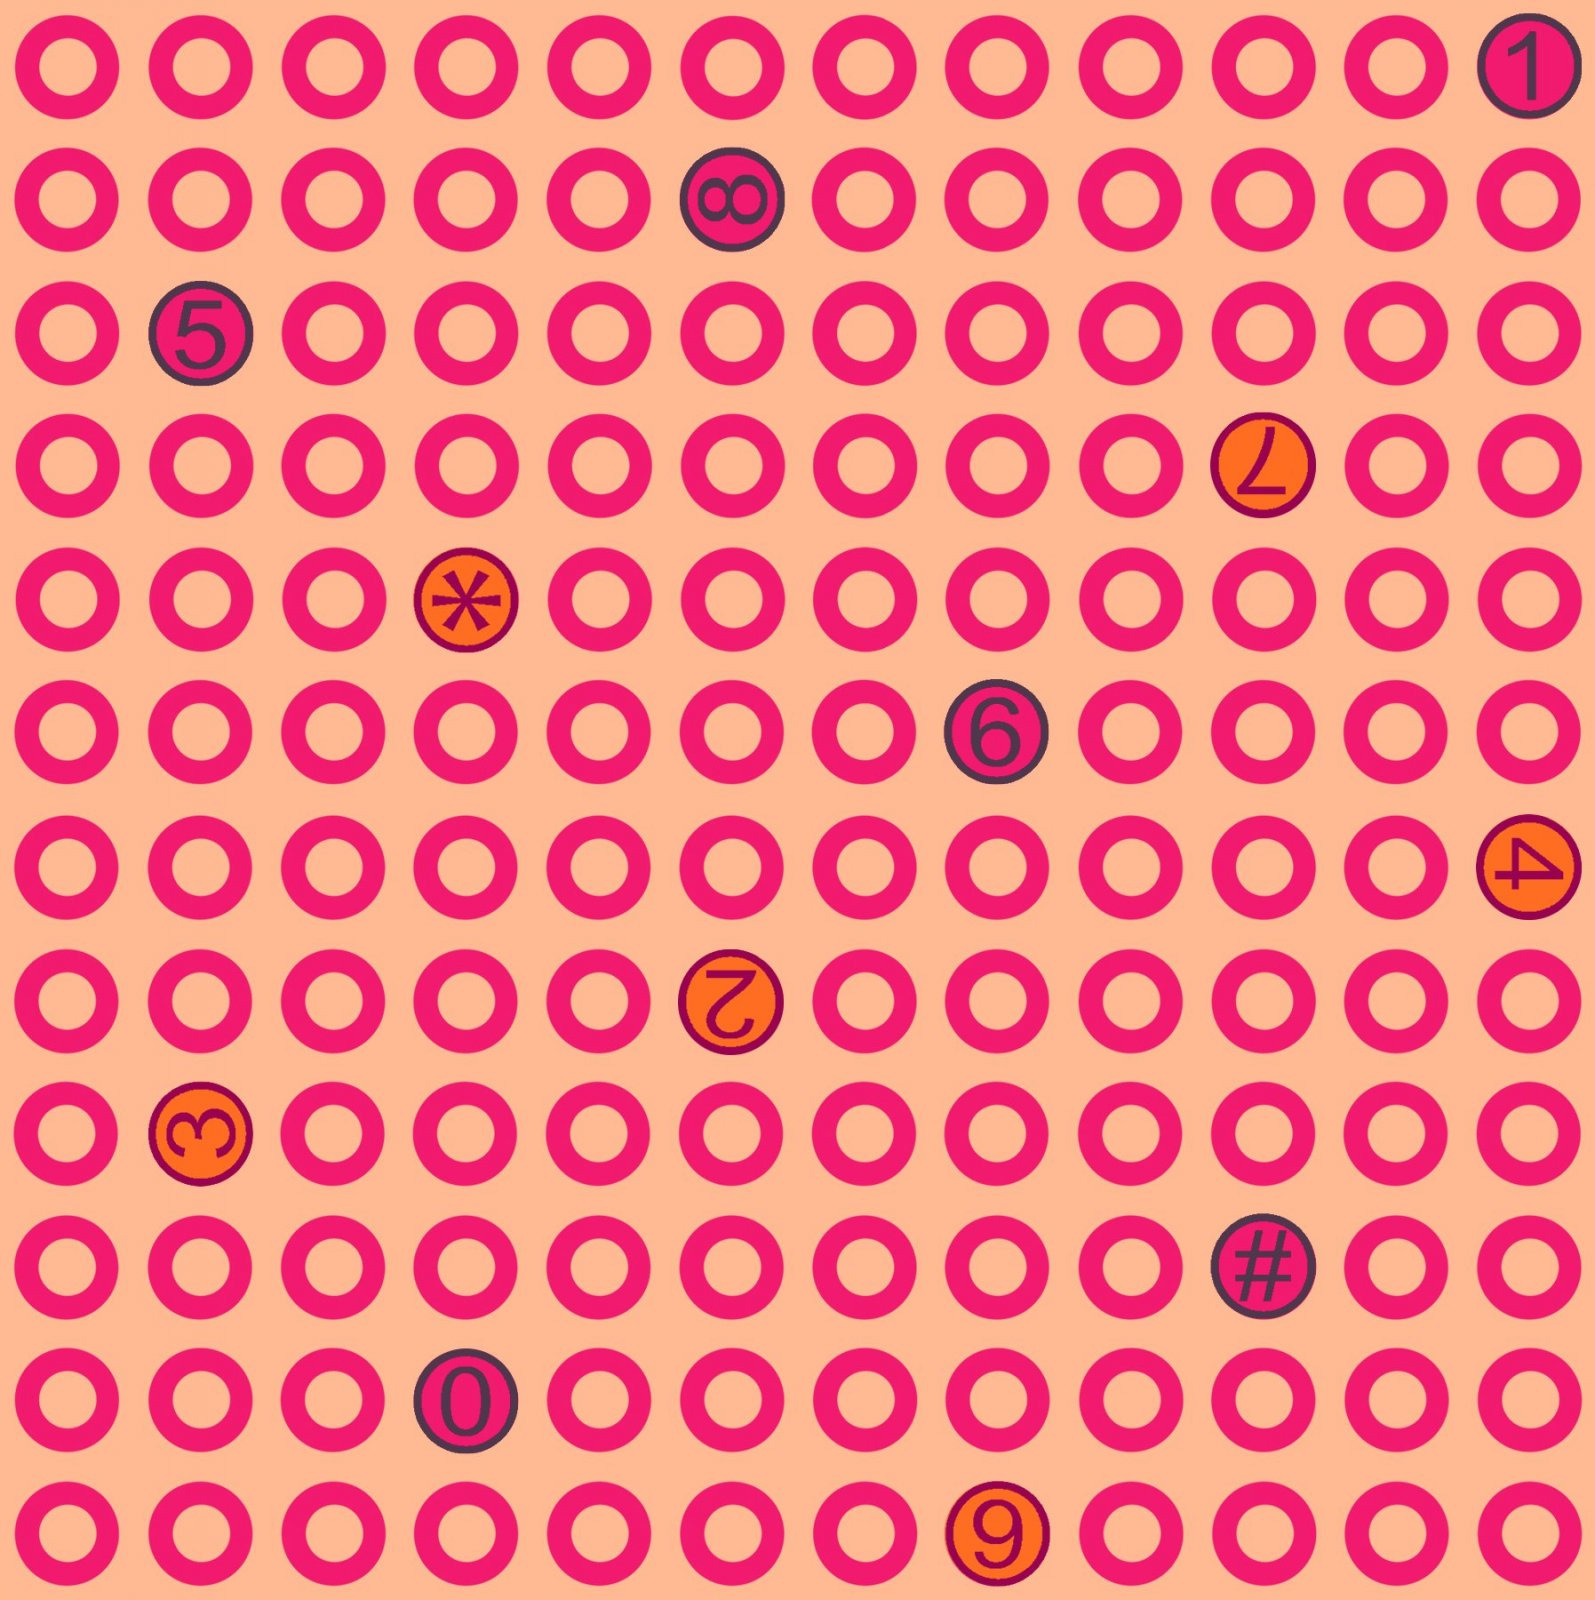 Paintbrush Studio - Ring Ring - Dots - Pink